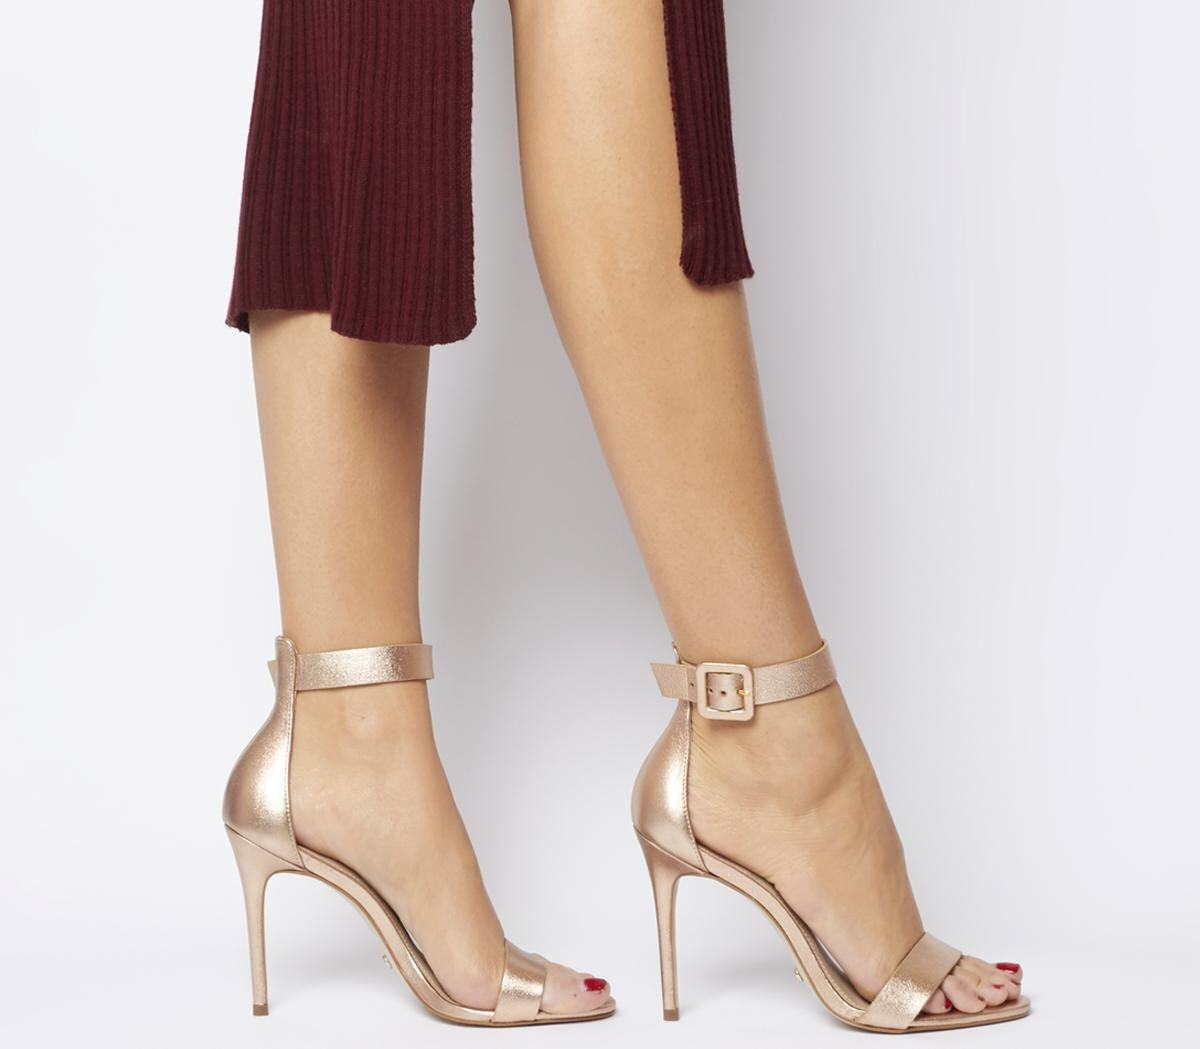 Office Heart Two Part Sandal Heels Rose Gold Leather